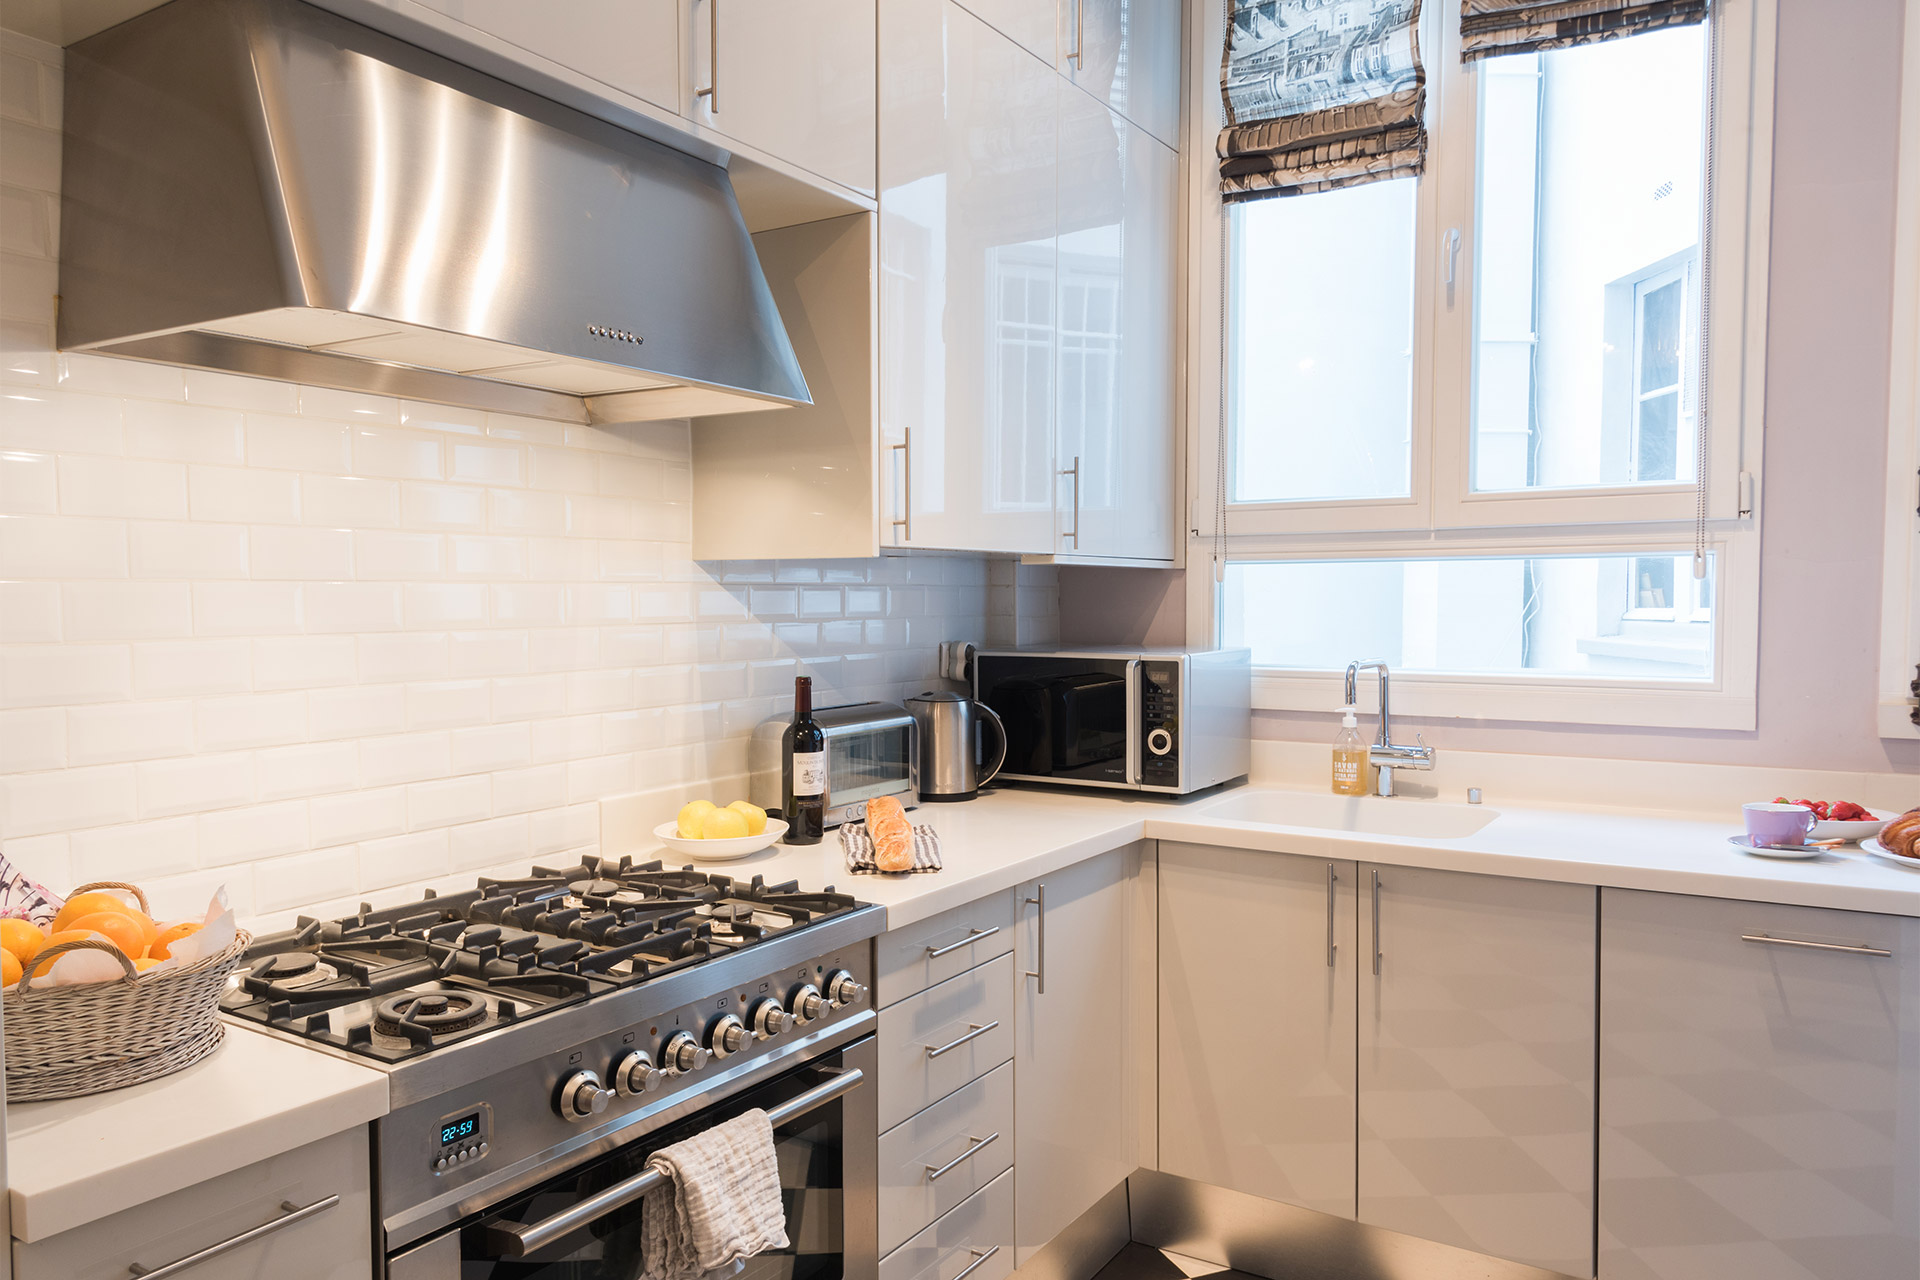 Kitchen with stylish black and white check flooring in the Maubert vacation rental offered by Paris Perfect